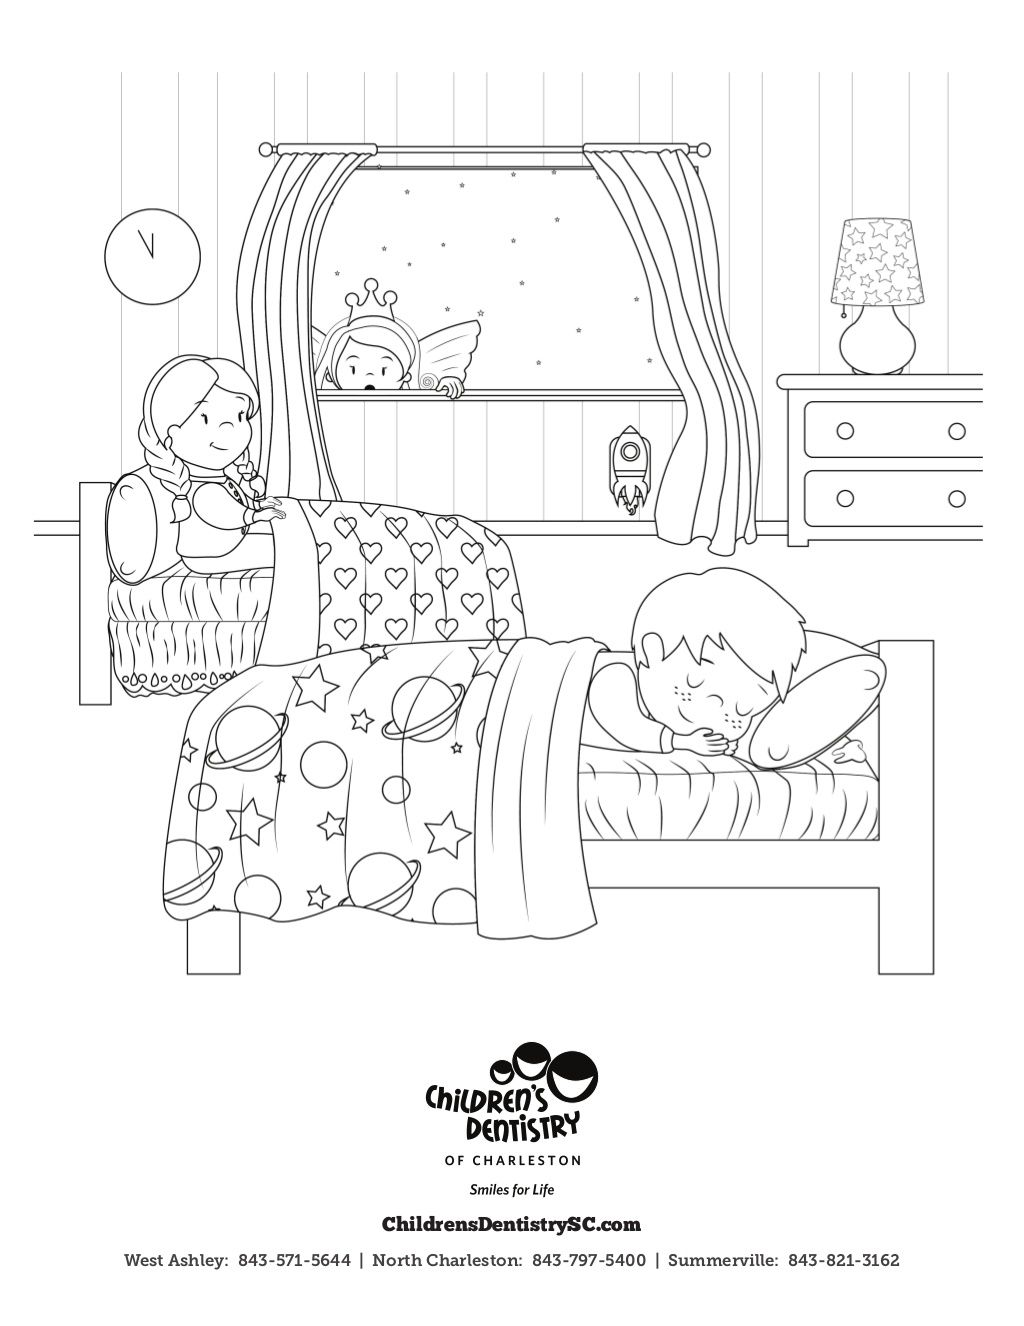 Free Toothfairy Coloring Sheet By Children S Dentistry Of Charleston Freecoloringsheet